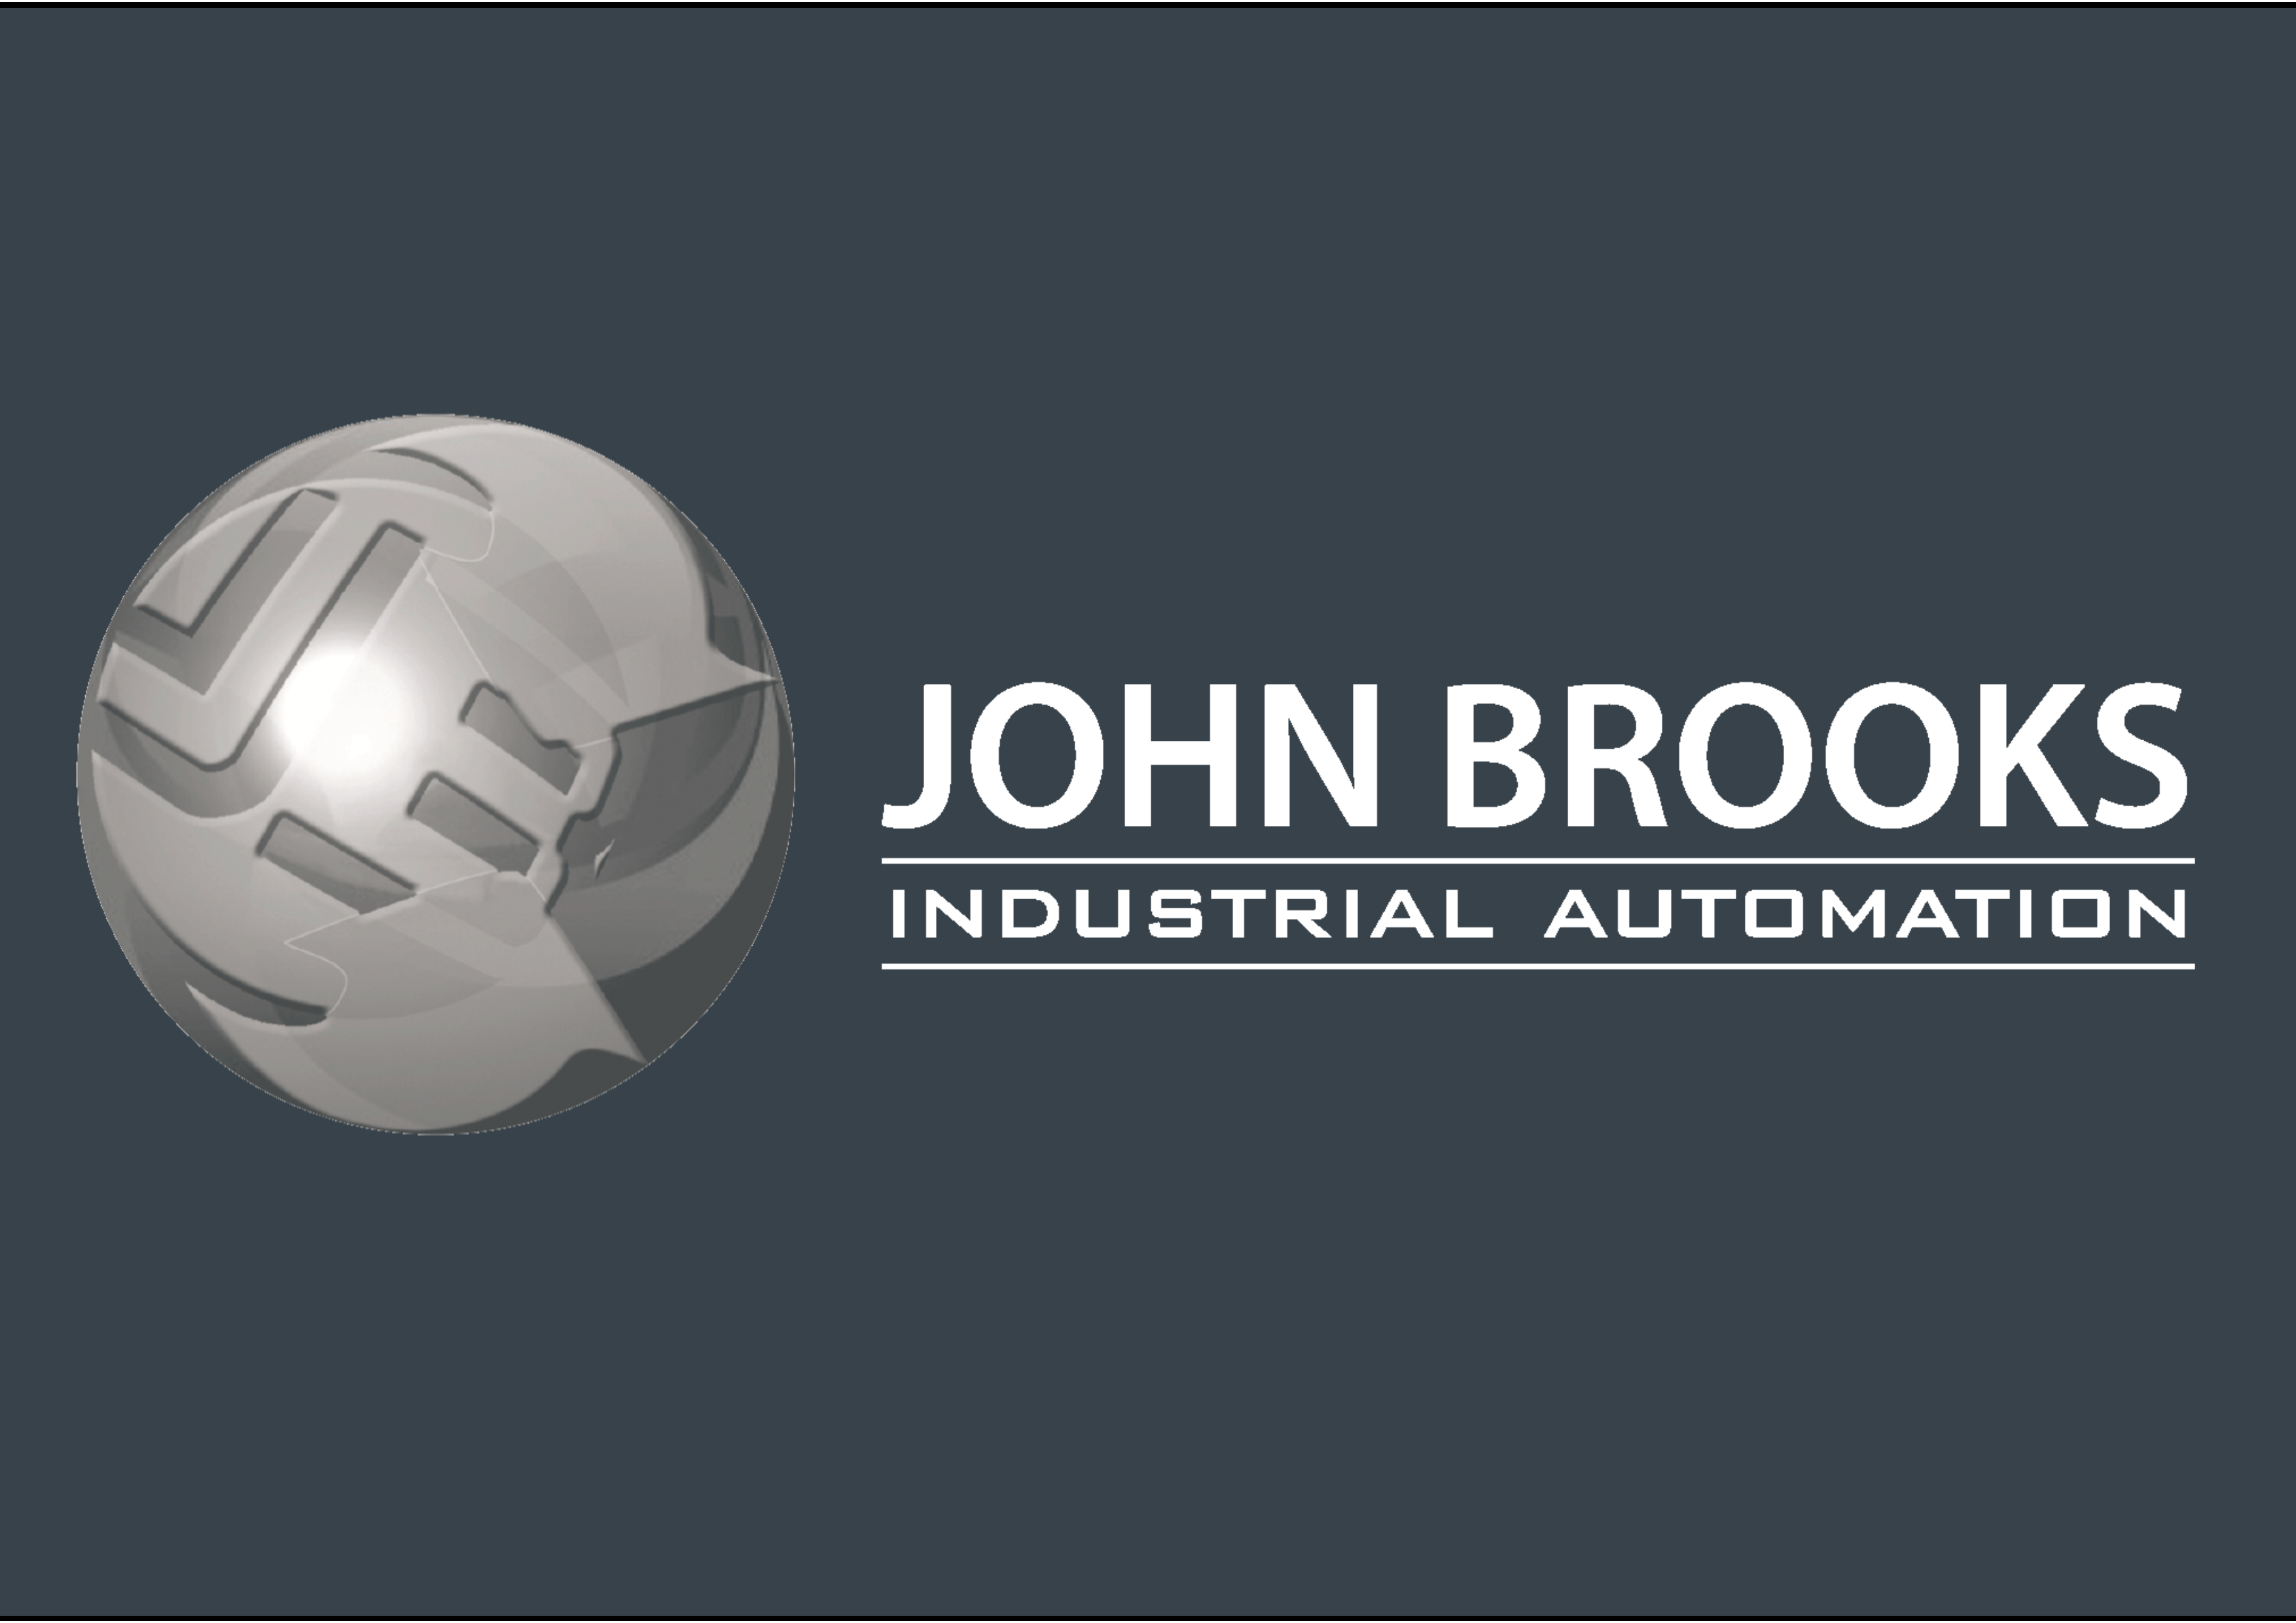 John Brooks Ltd